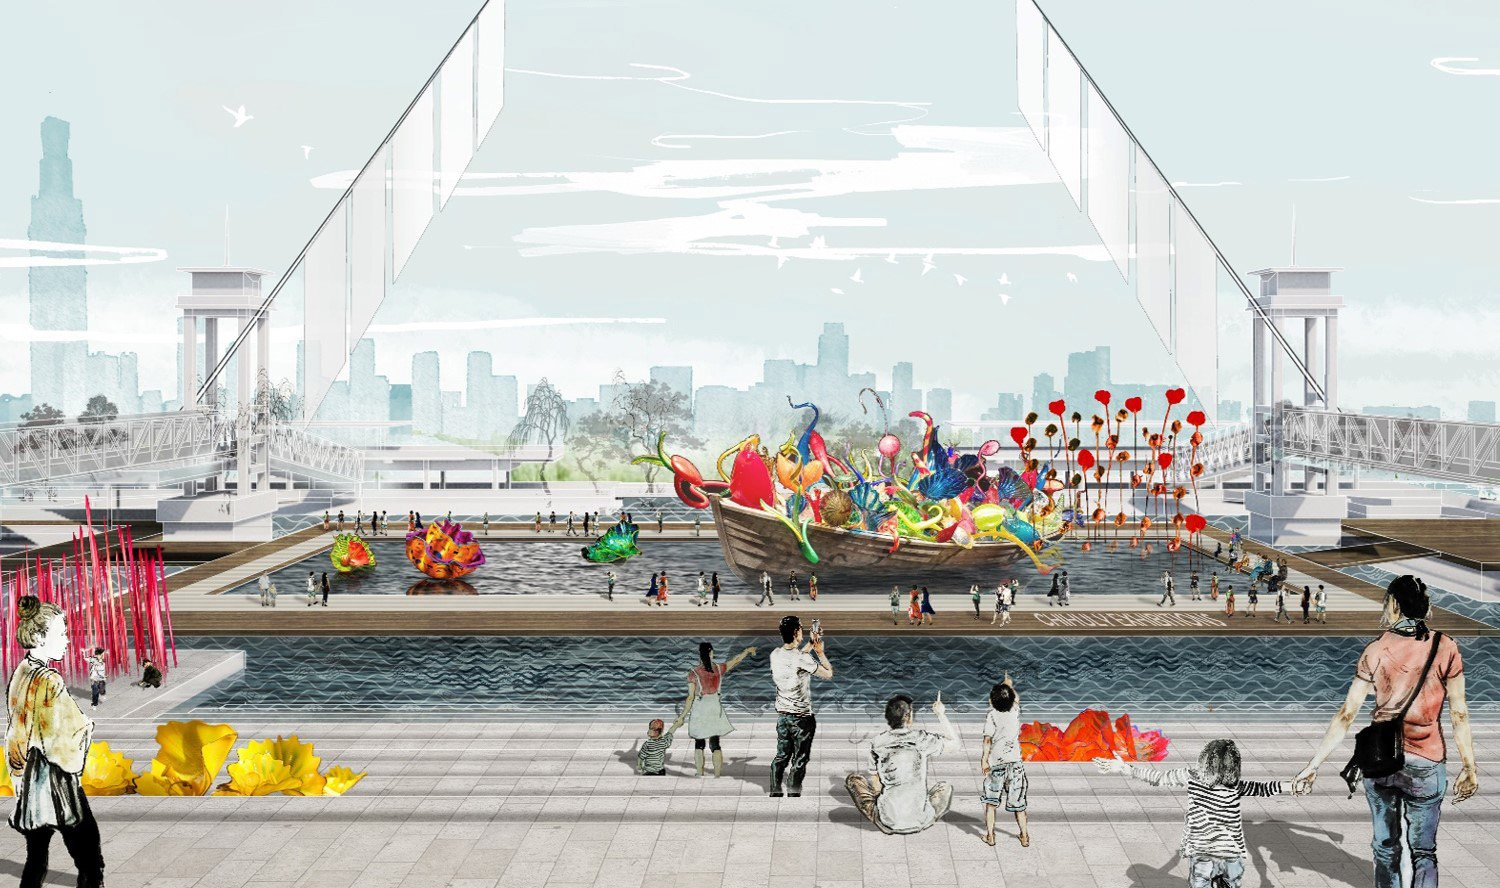 TRANSITIONING INDUSTRY TO CULTURAL EXPRESSION: Former port infrastructure including loading ramps, gangways, and platforms provide access to floating stages for outdoor art exhibits and performances. SASAKI}